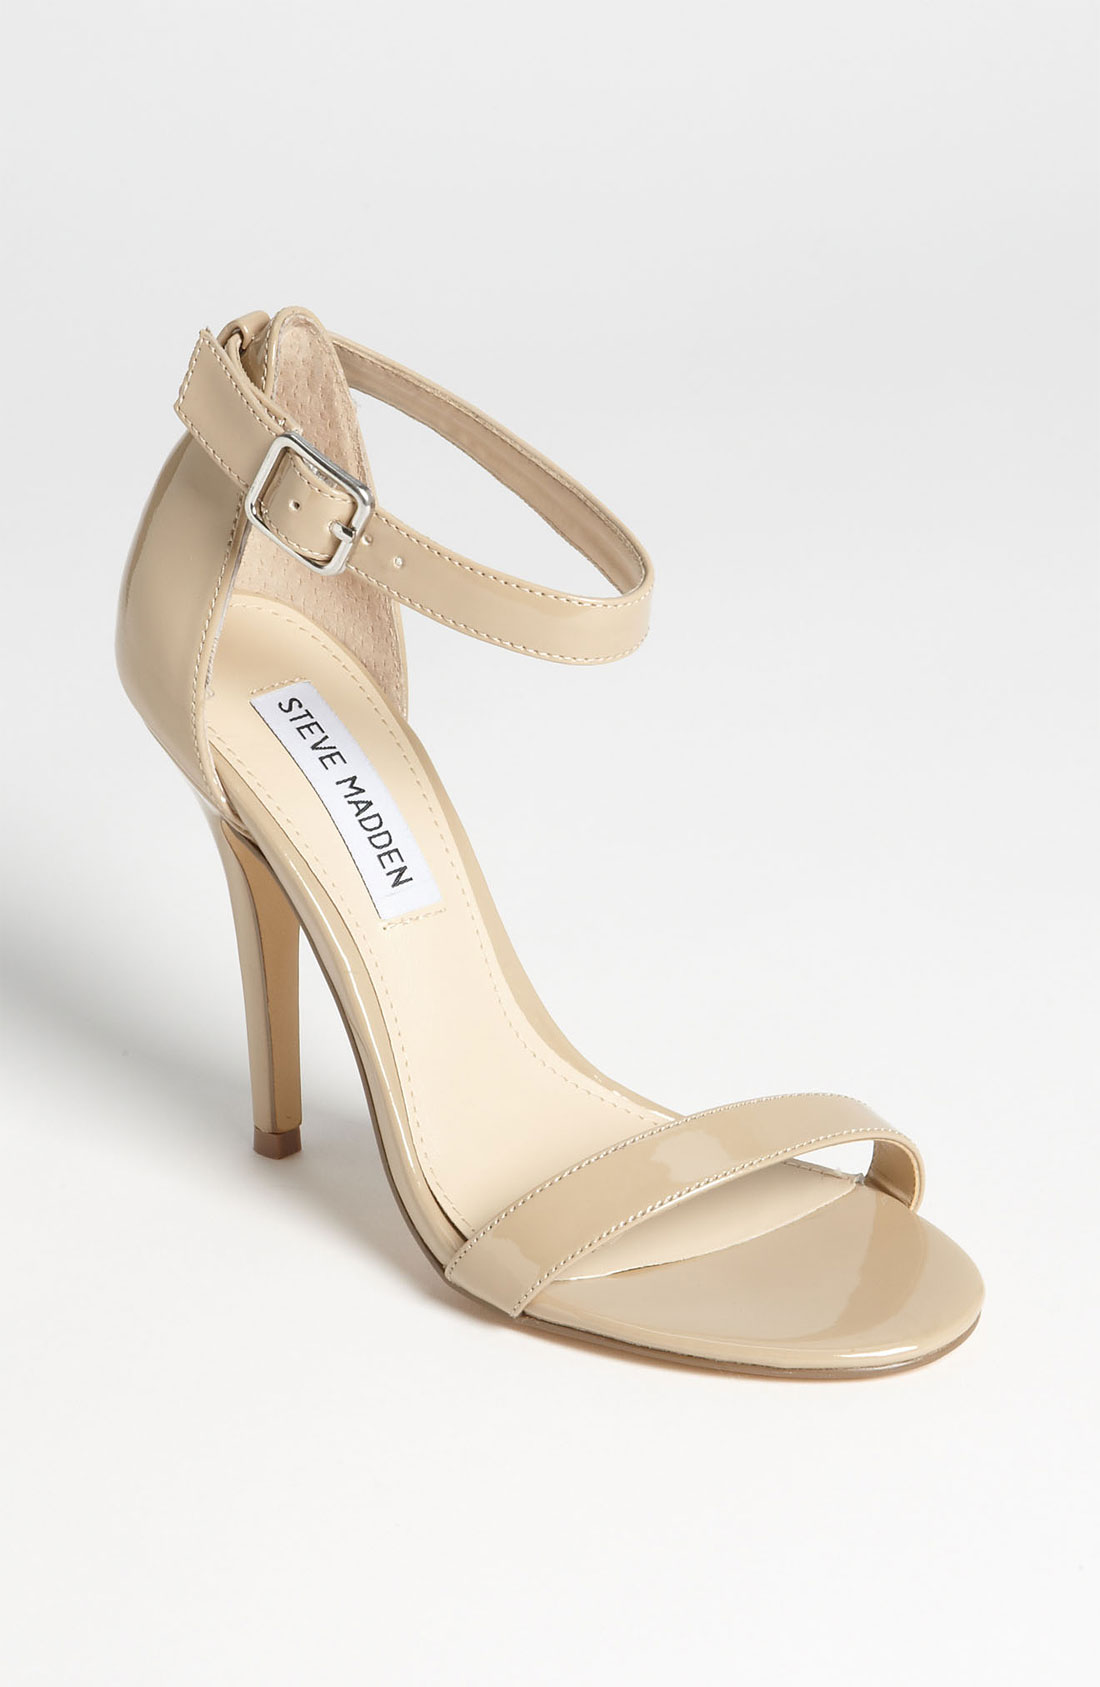 Simple Nude Heels - Is Heel